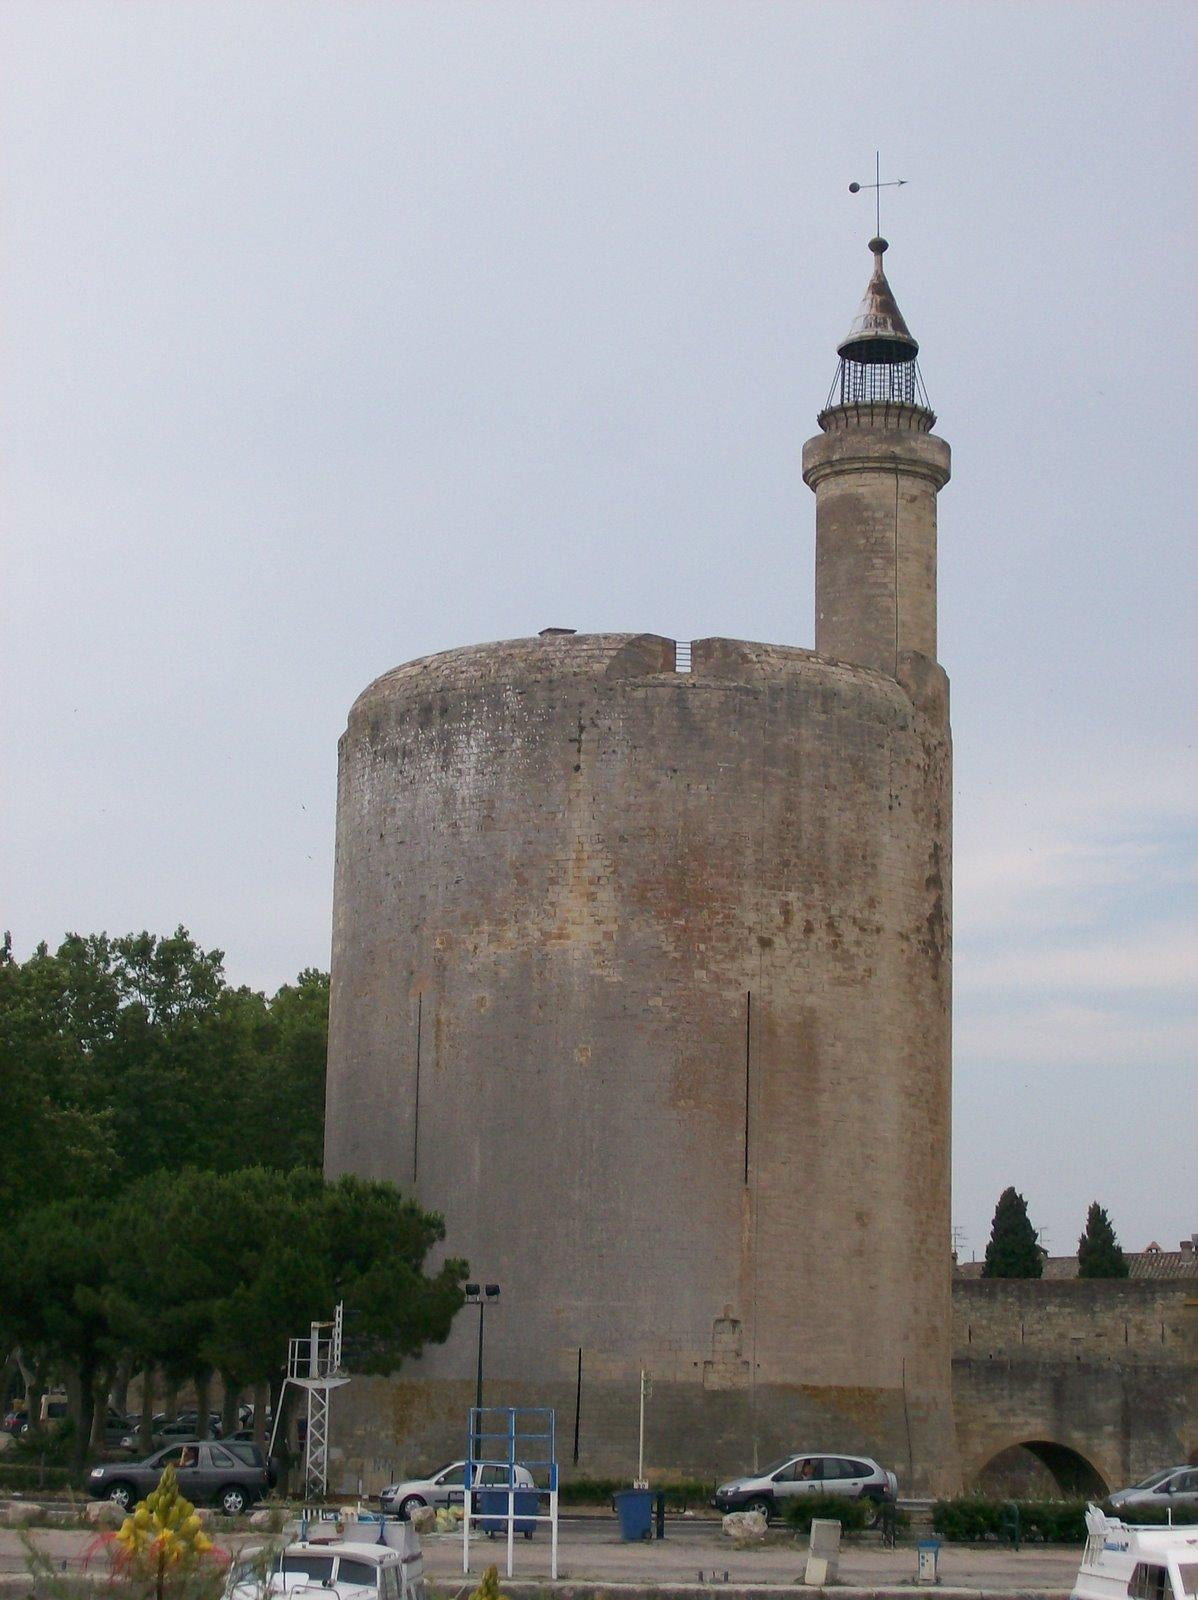 Towers and Ramparts of Aigues-Mortes